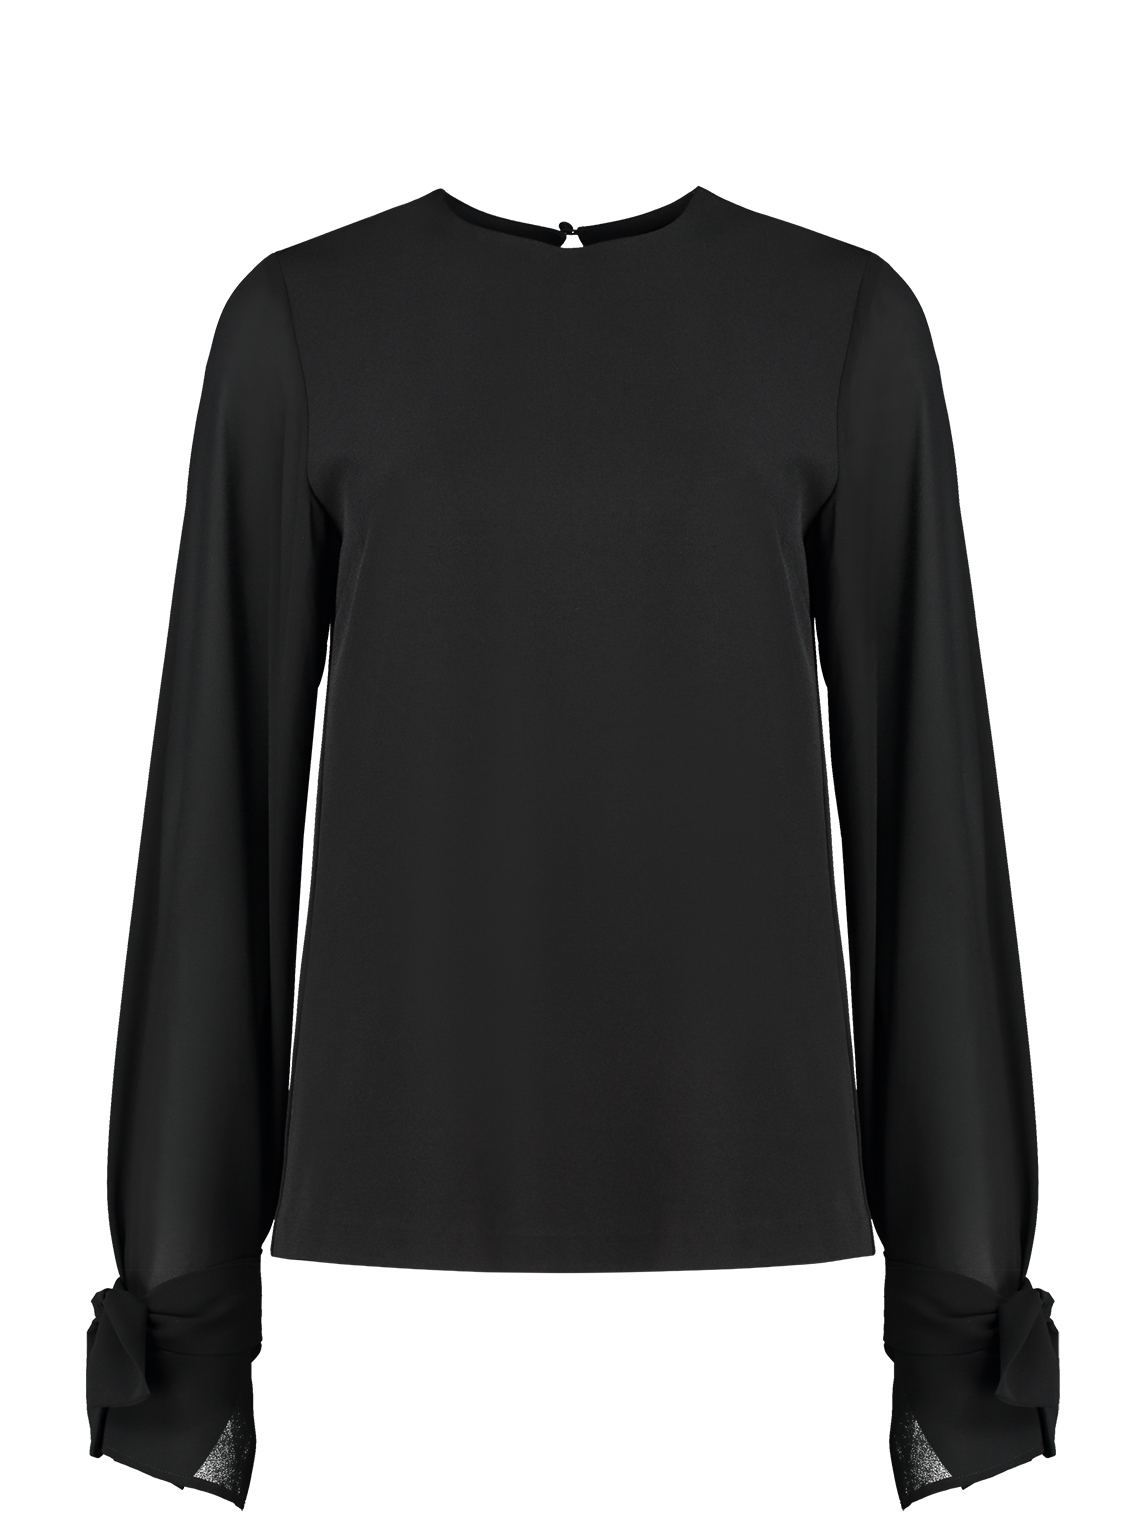 Piet Zoomers, Fifth House dames blouse